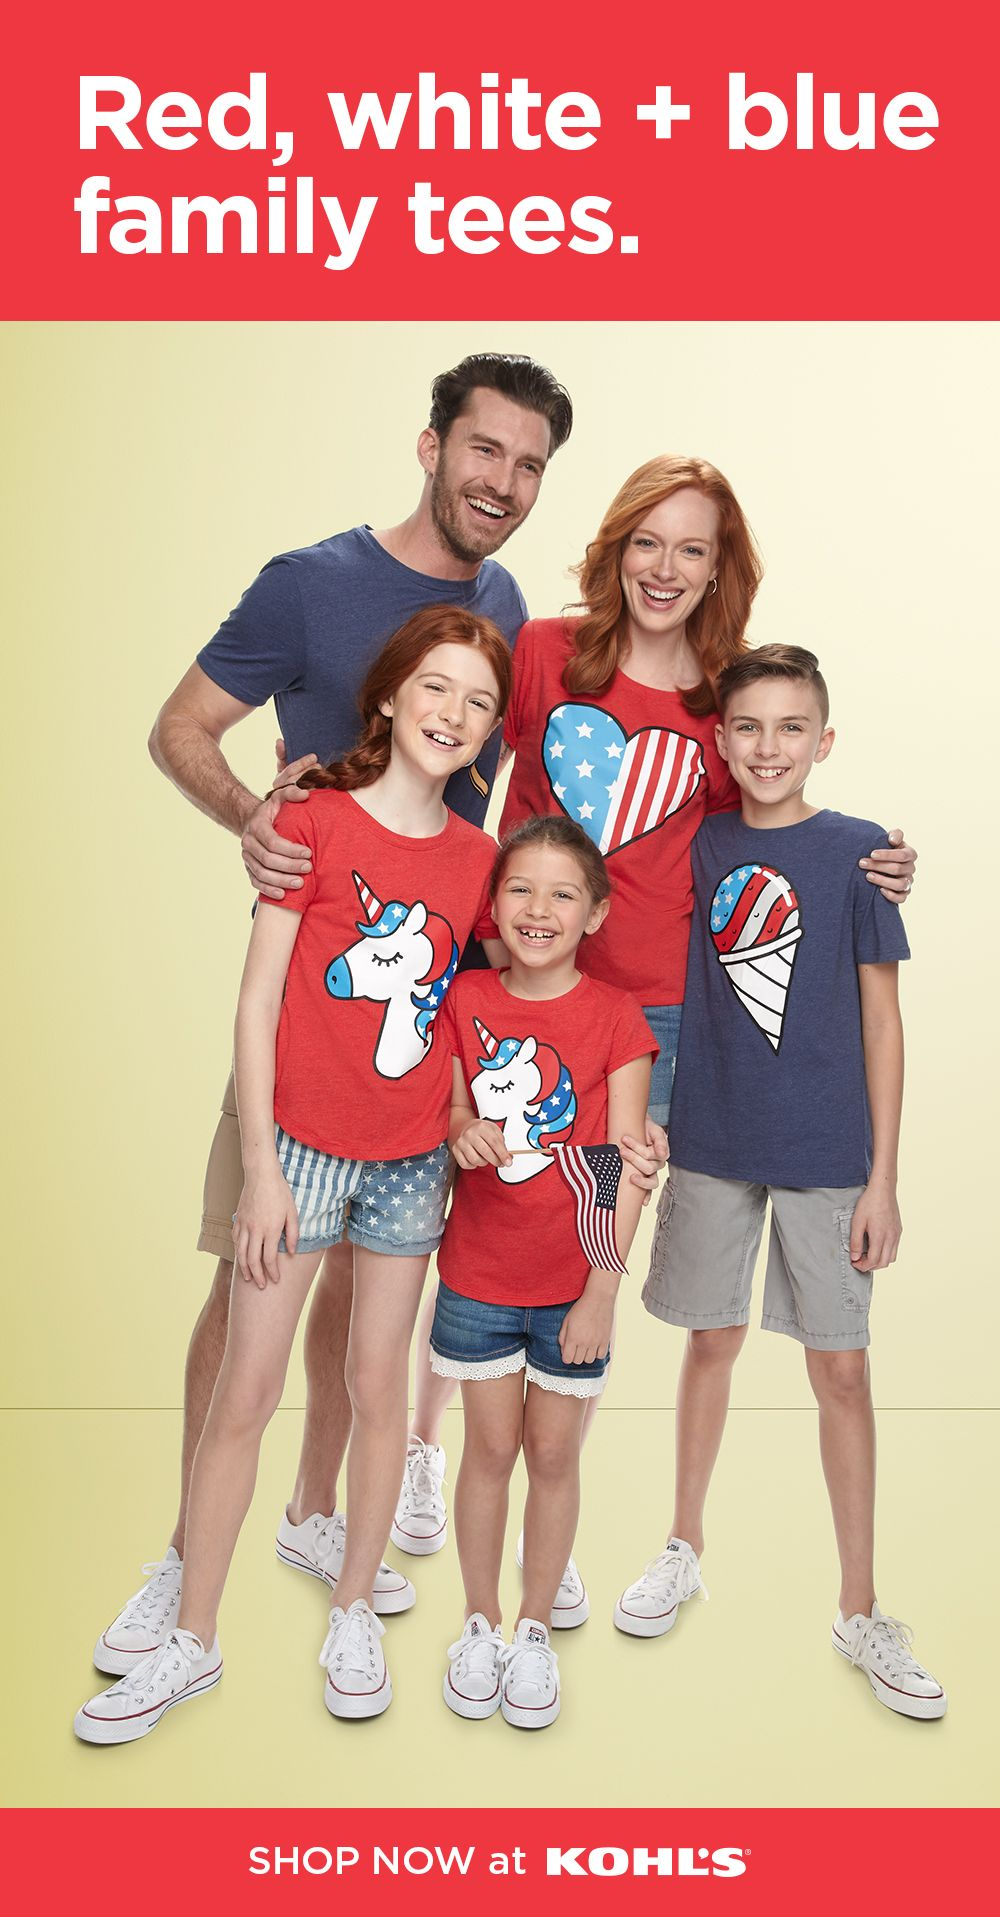 Find starspangled tees for the family at Kohl's! Whether